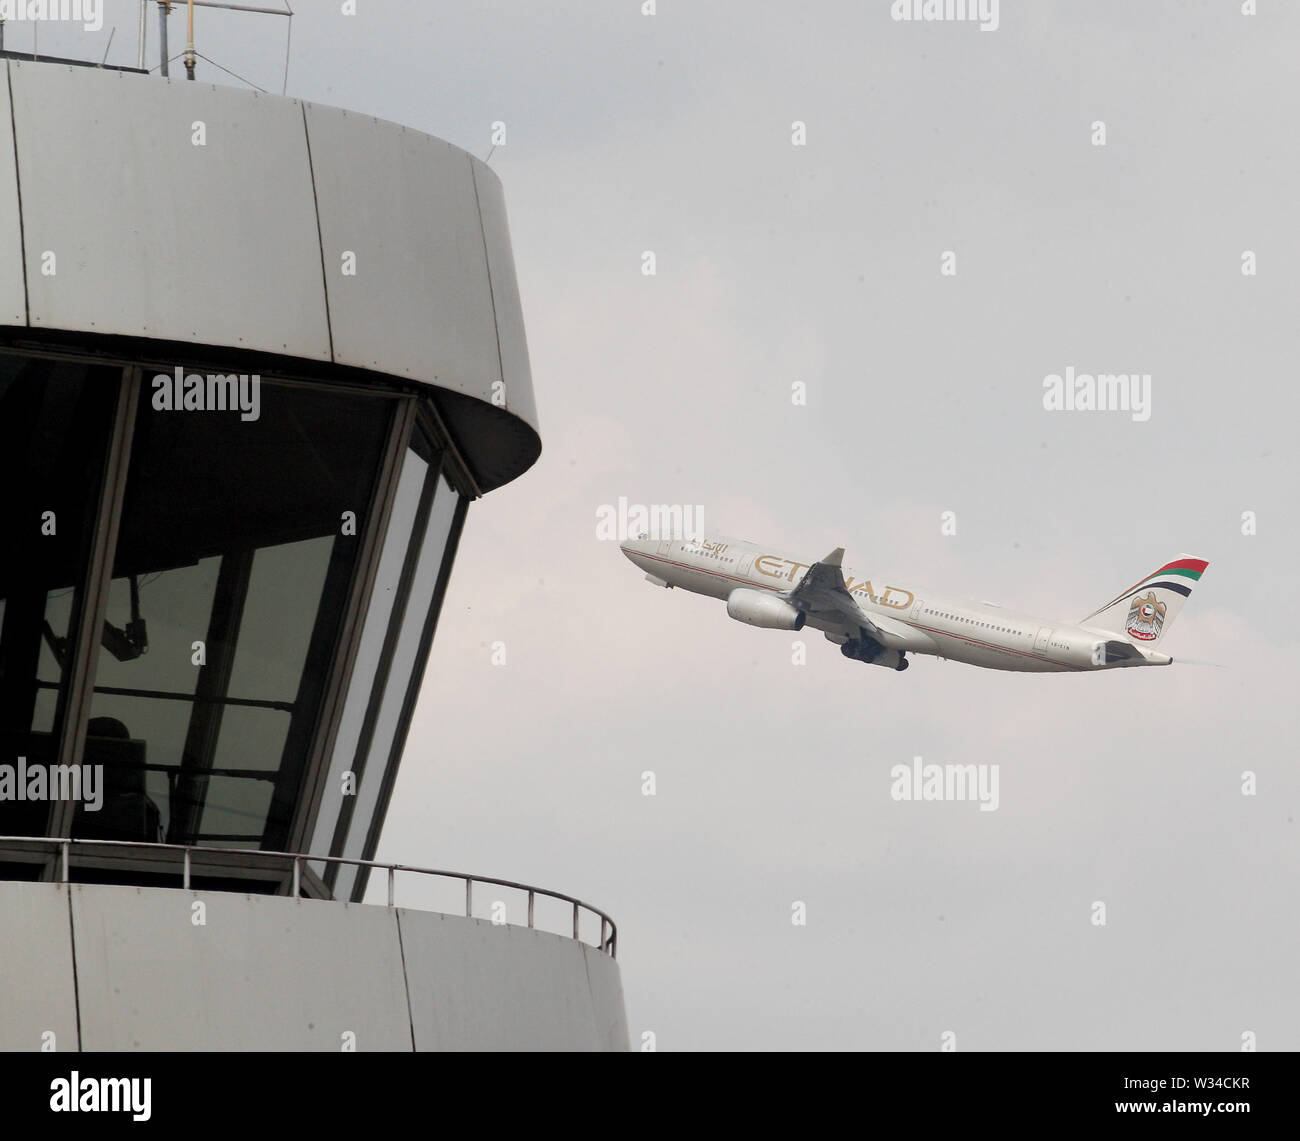 Duesseldorf, Germany. 12th July, 2019. An aircraft of the airline 'Etihad' takes off from Düsseldorf airport. Summer holidays begin in North Rhine-Westphalia. Directly on the last school day the travel wave starts, many families start into the vacation. Credit: Roland Weihrauch/dpa/Alamy Live News - Stock Image